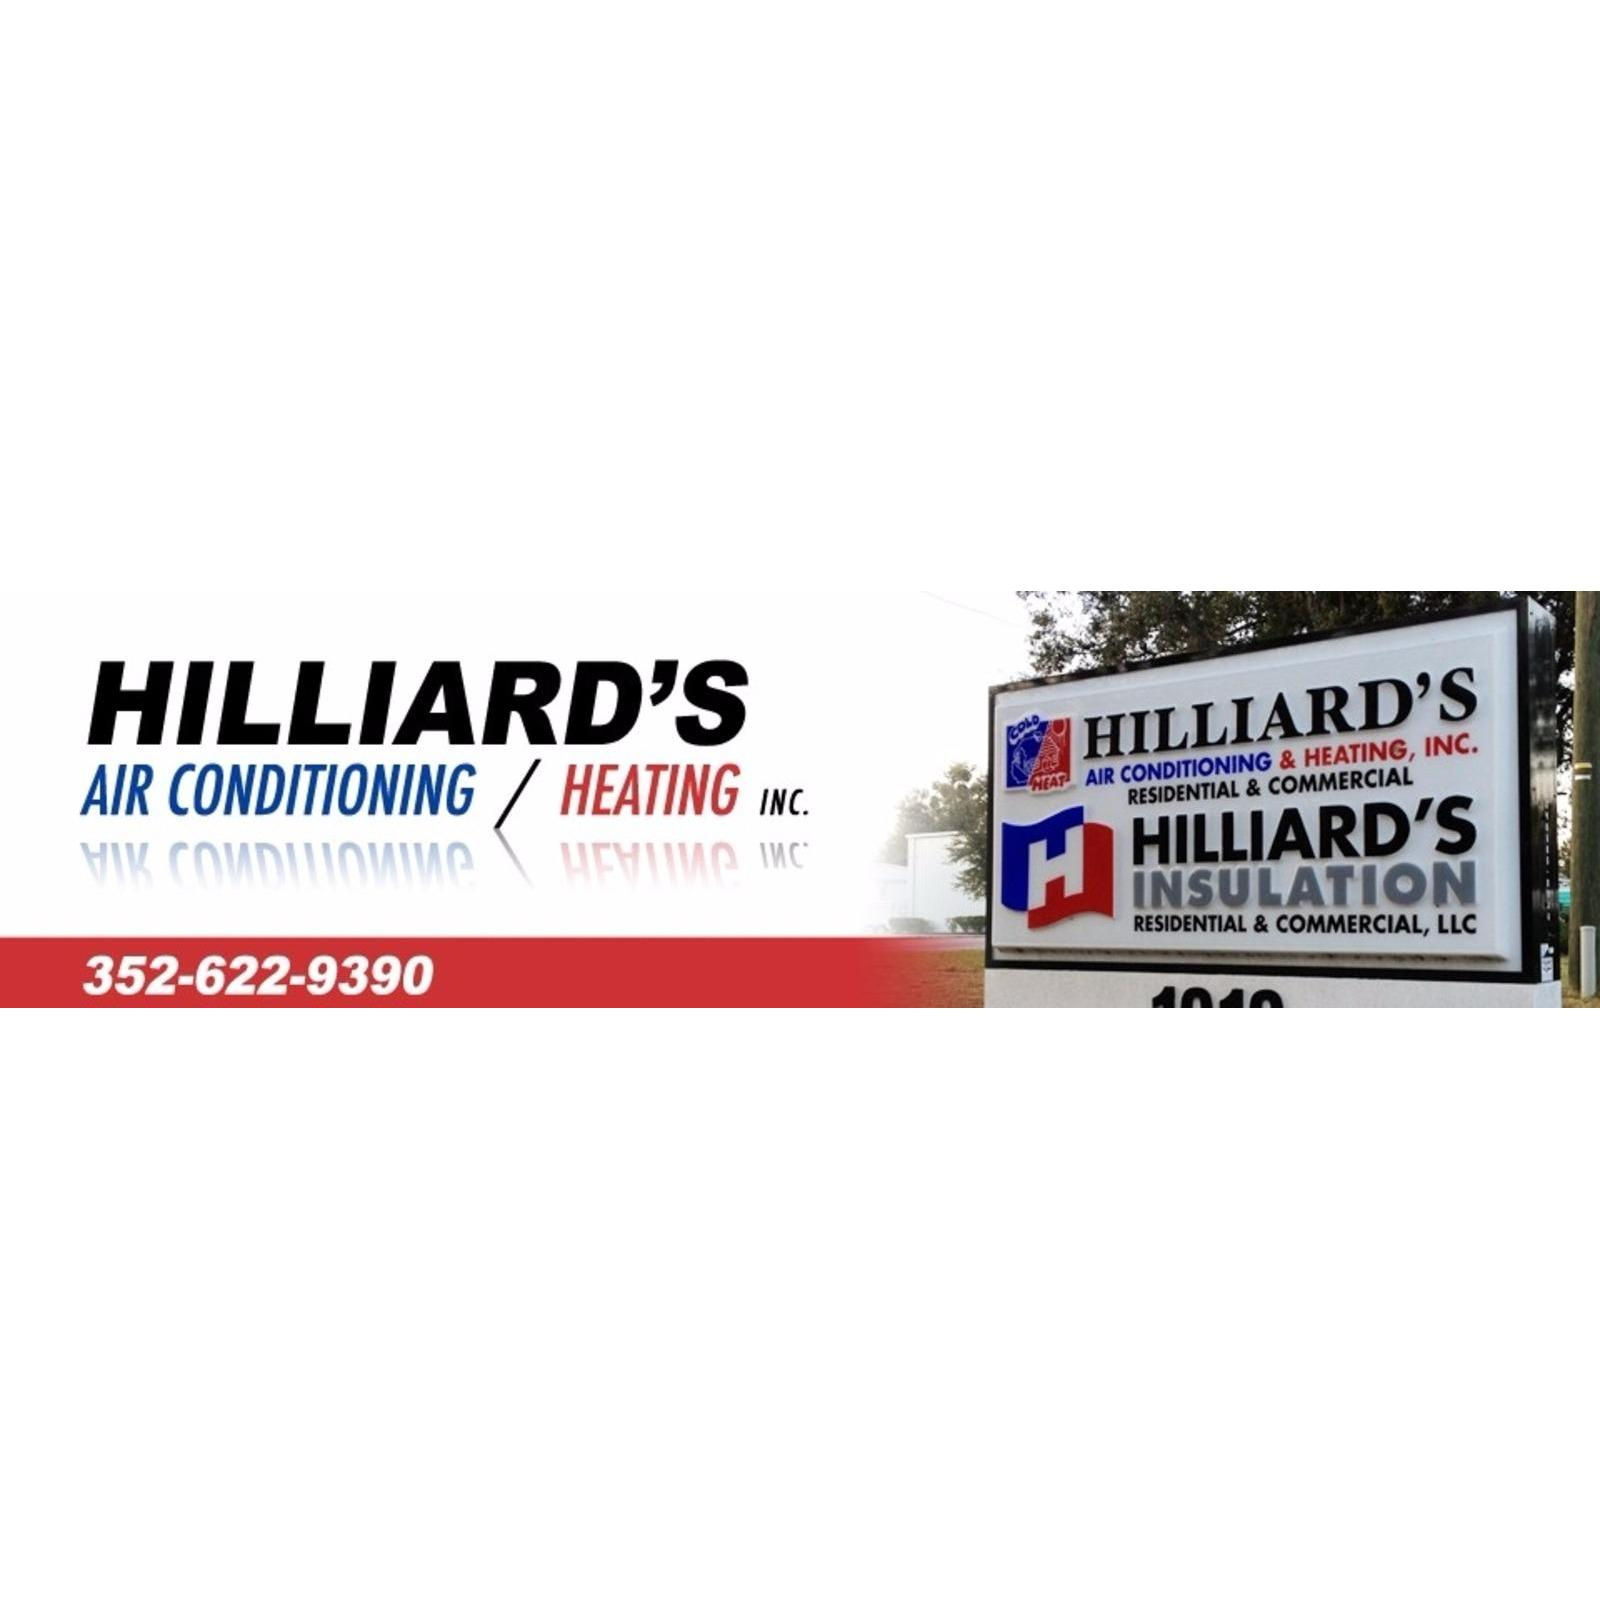 Hilliard's Air Conditioning & Heating Inc